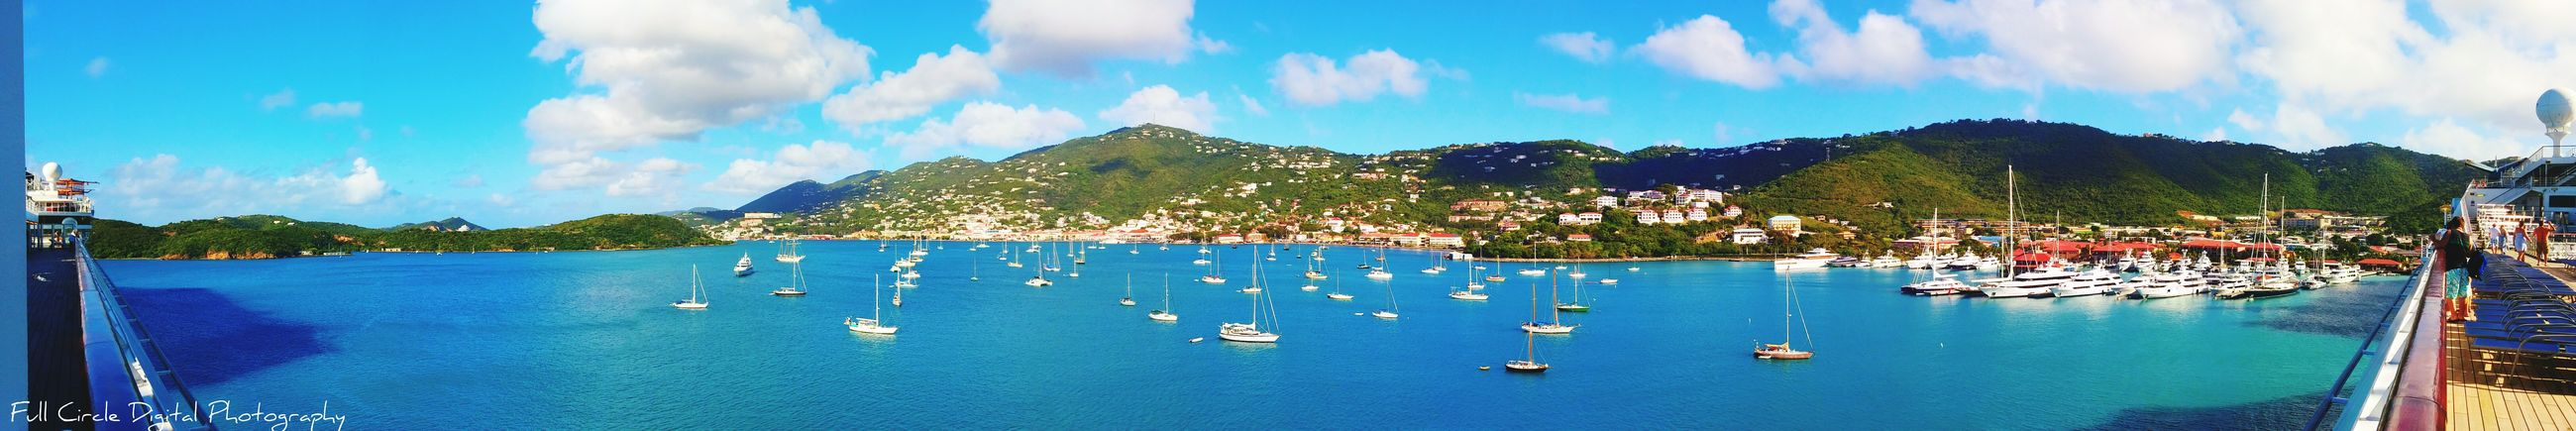 Panoramic Vacation2015 Carnivalcruise  Stthomas Travel Fullcircledigitalphotography LGg3photography